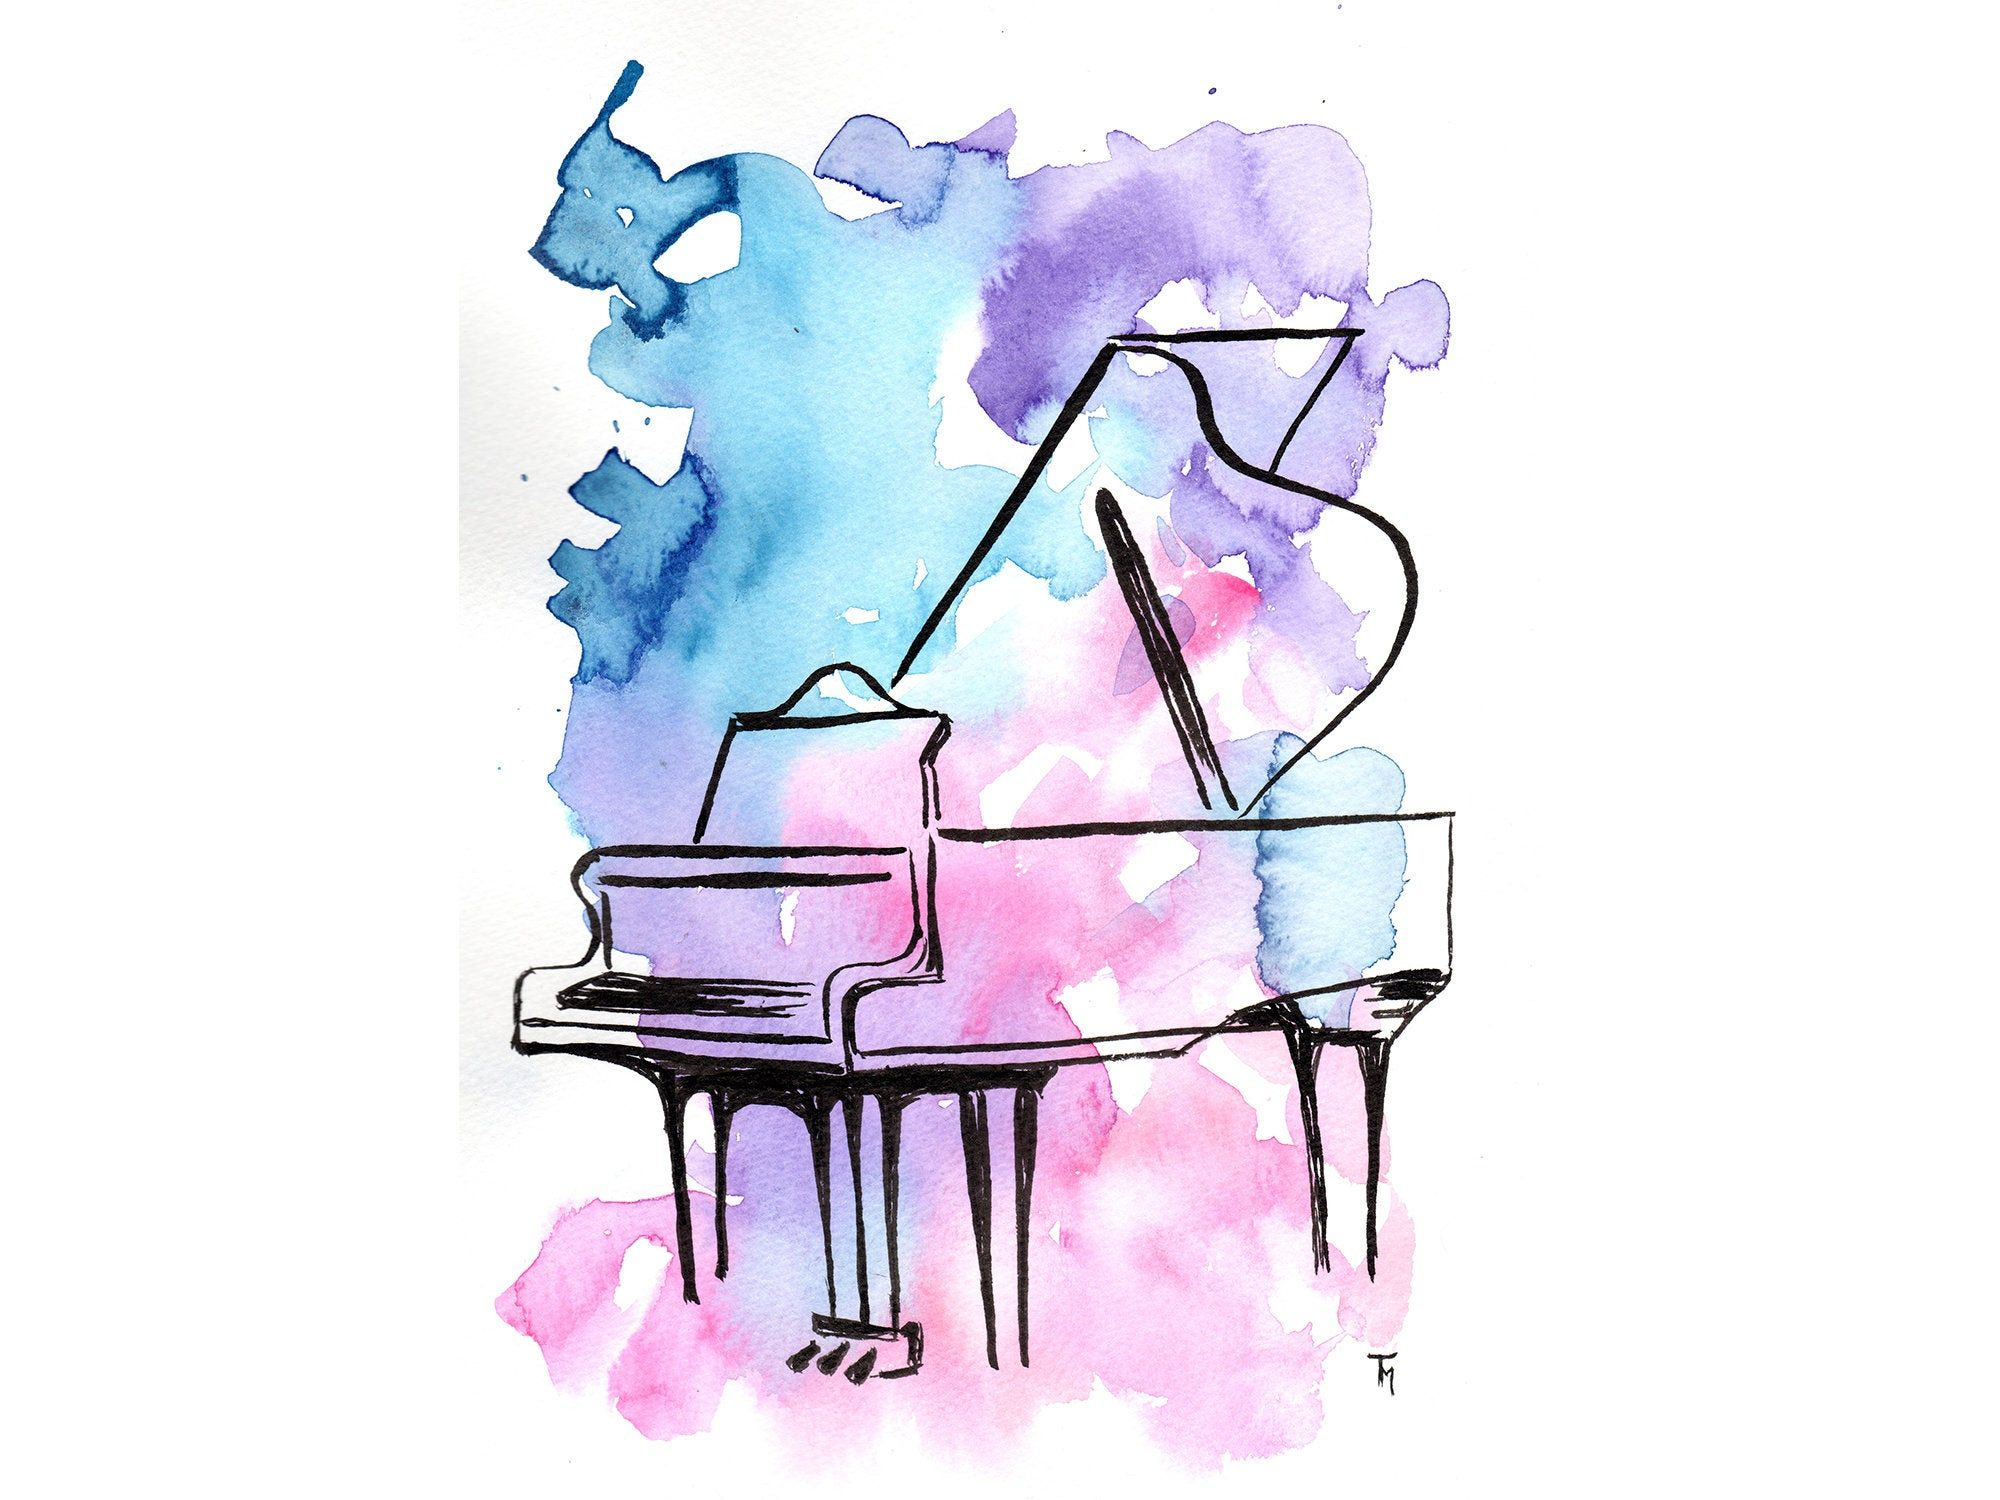 Watercolour Painting Piano Colourful Piano Print Of Hand Painted Watercolor Painting Aquarellbild Musik Malerei Aquarell